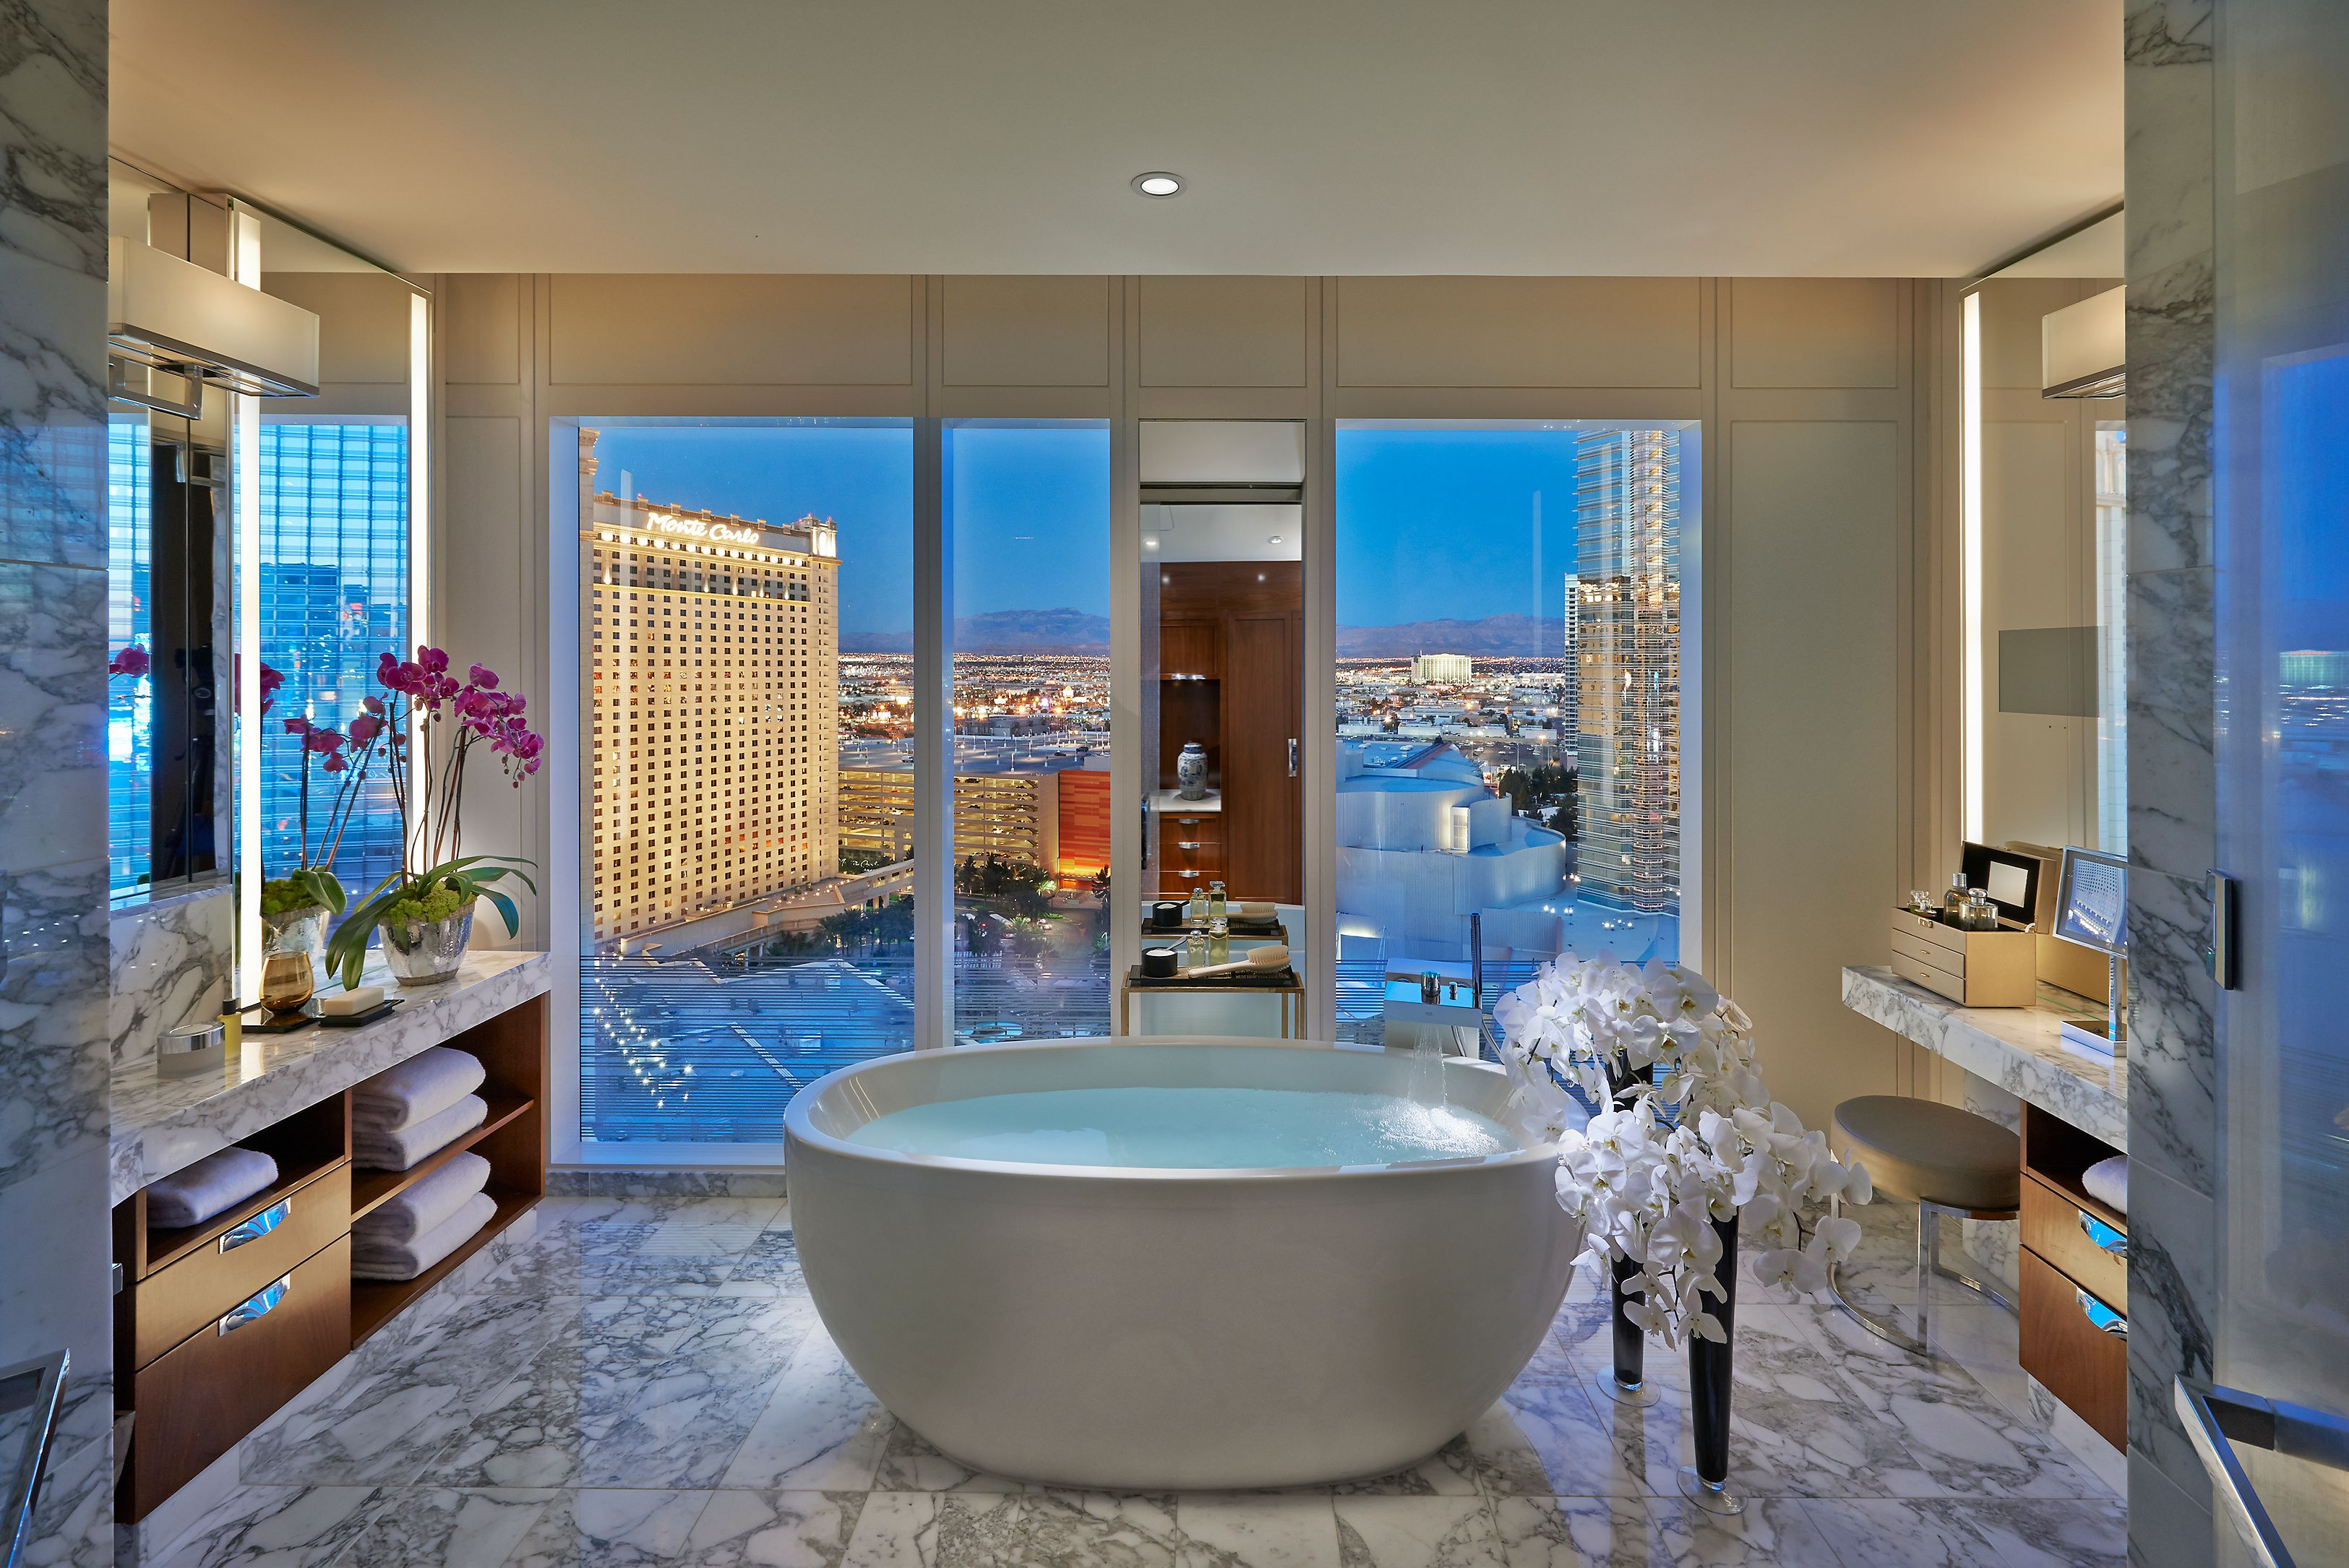 Las Vegas Hotels Suites 2 Bedroom Inspiration Decorating Design